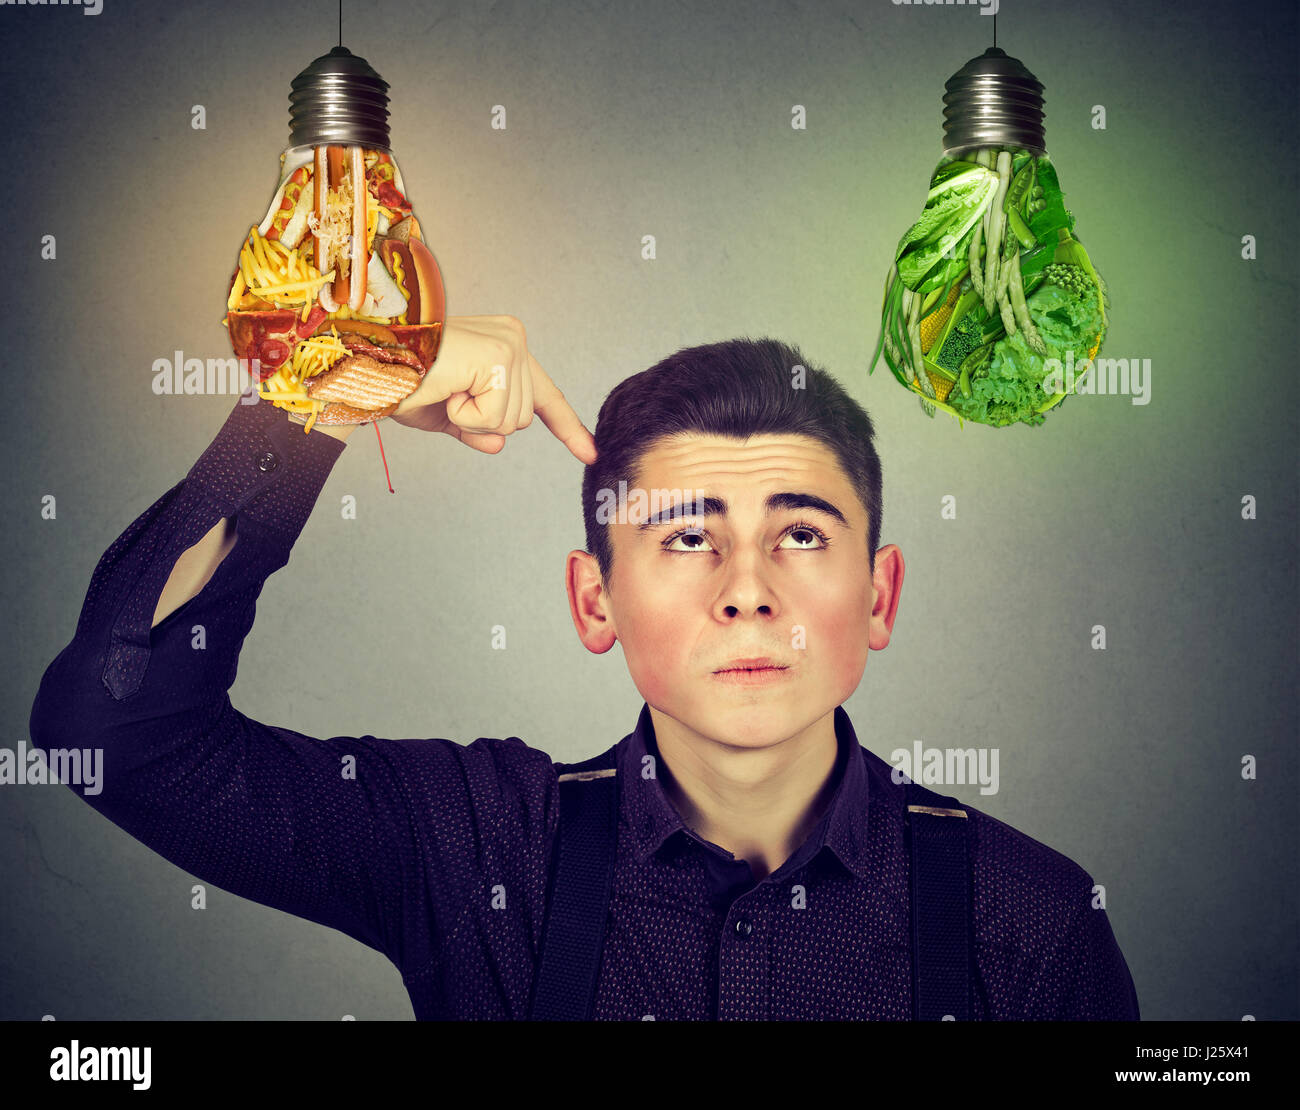 Diet choice healthy nutrition concept. Perplexed man thinking looking up at junk food and green vegetables light - Stock Image